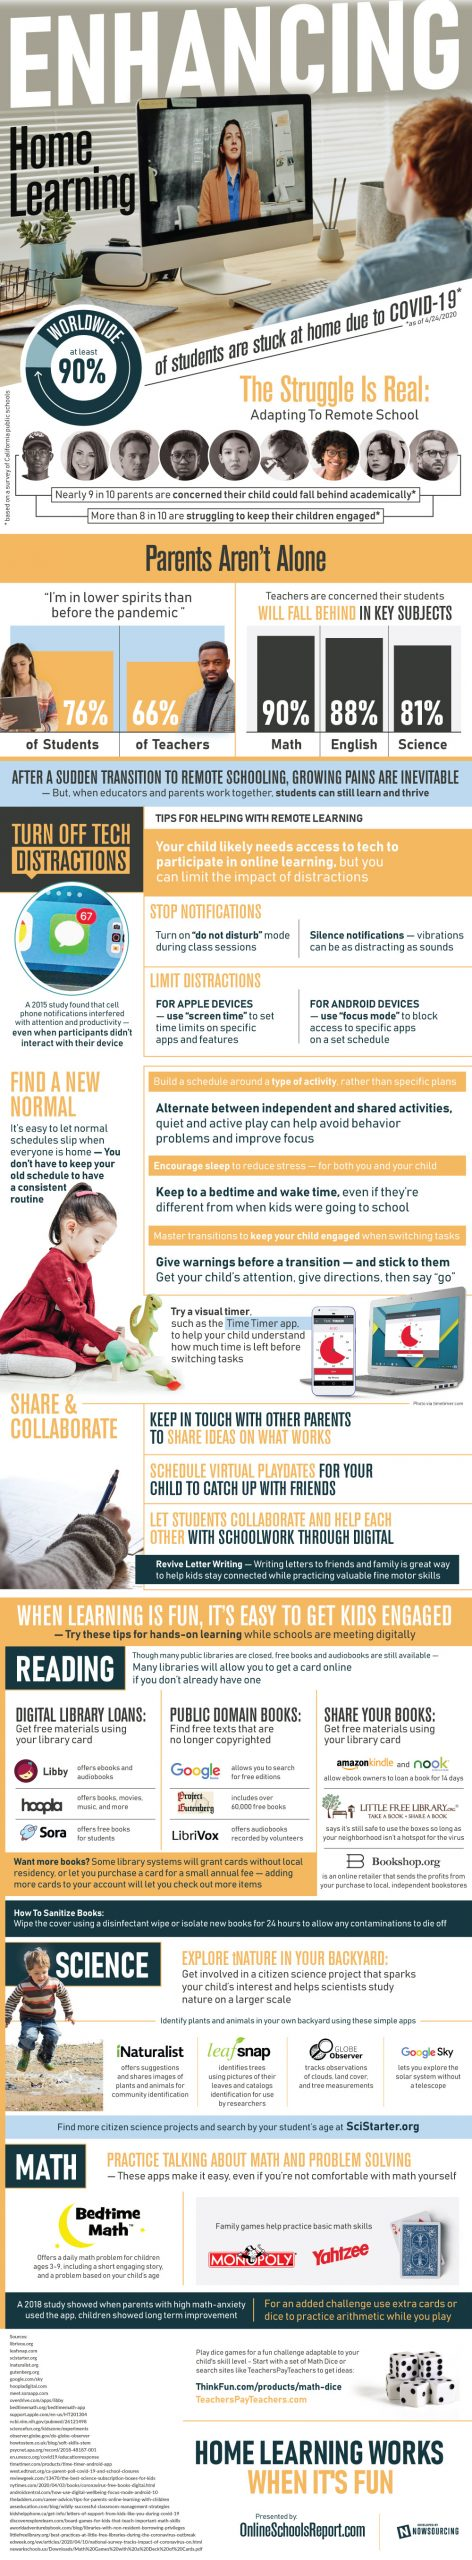 Enhancing home learning infographic